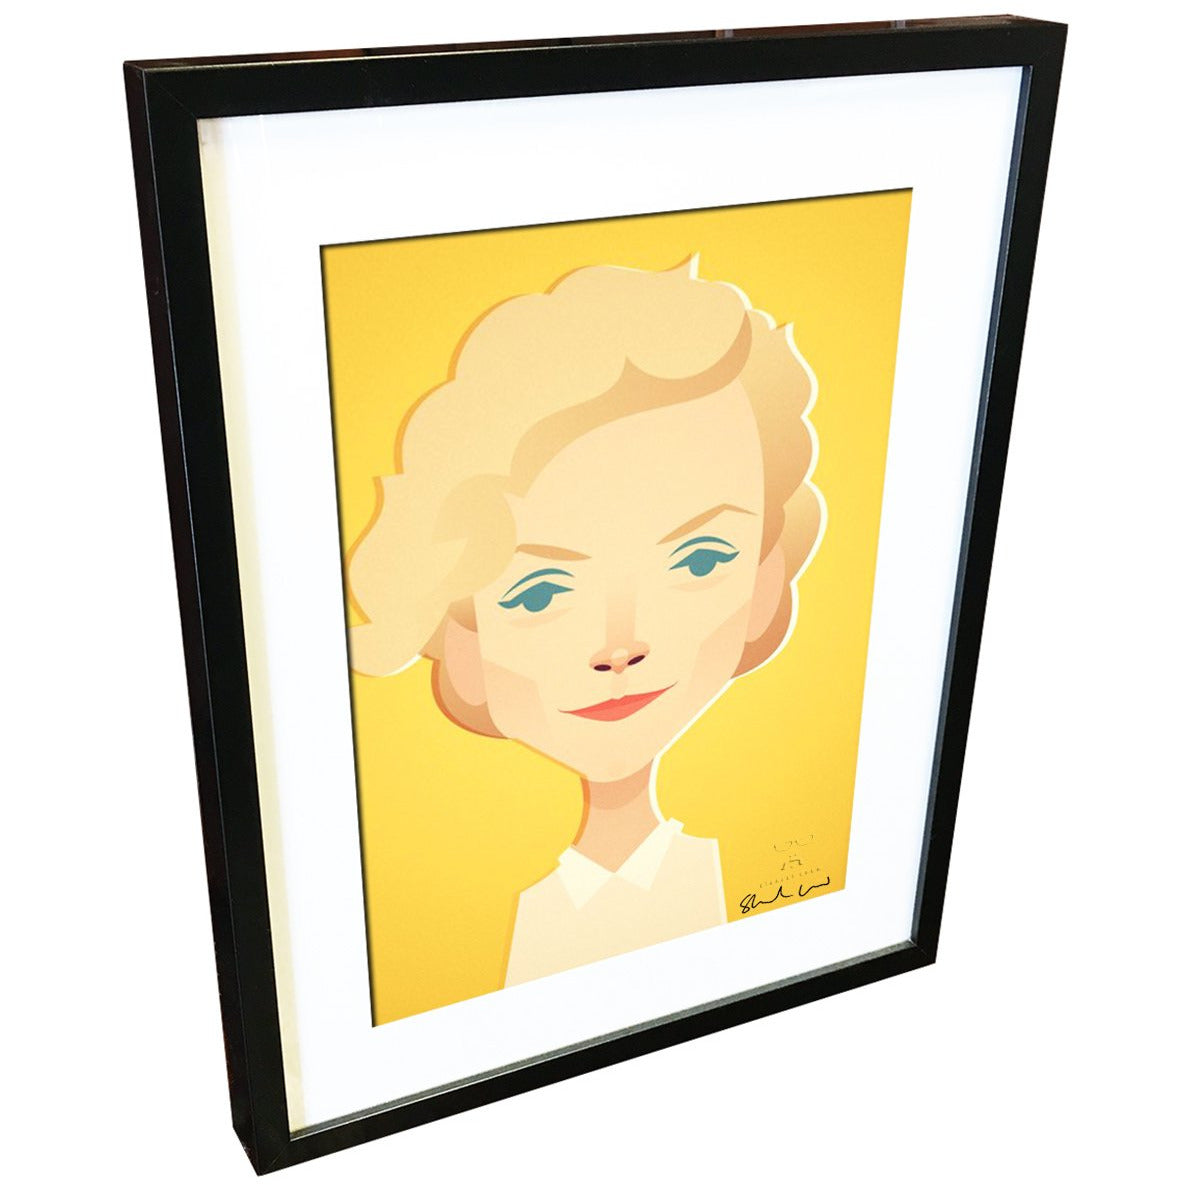 Maxine Peak by Stanley Chow - Signed and stamped fine art print - Egoiste Gallery